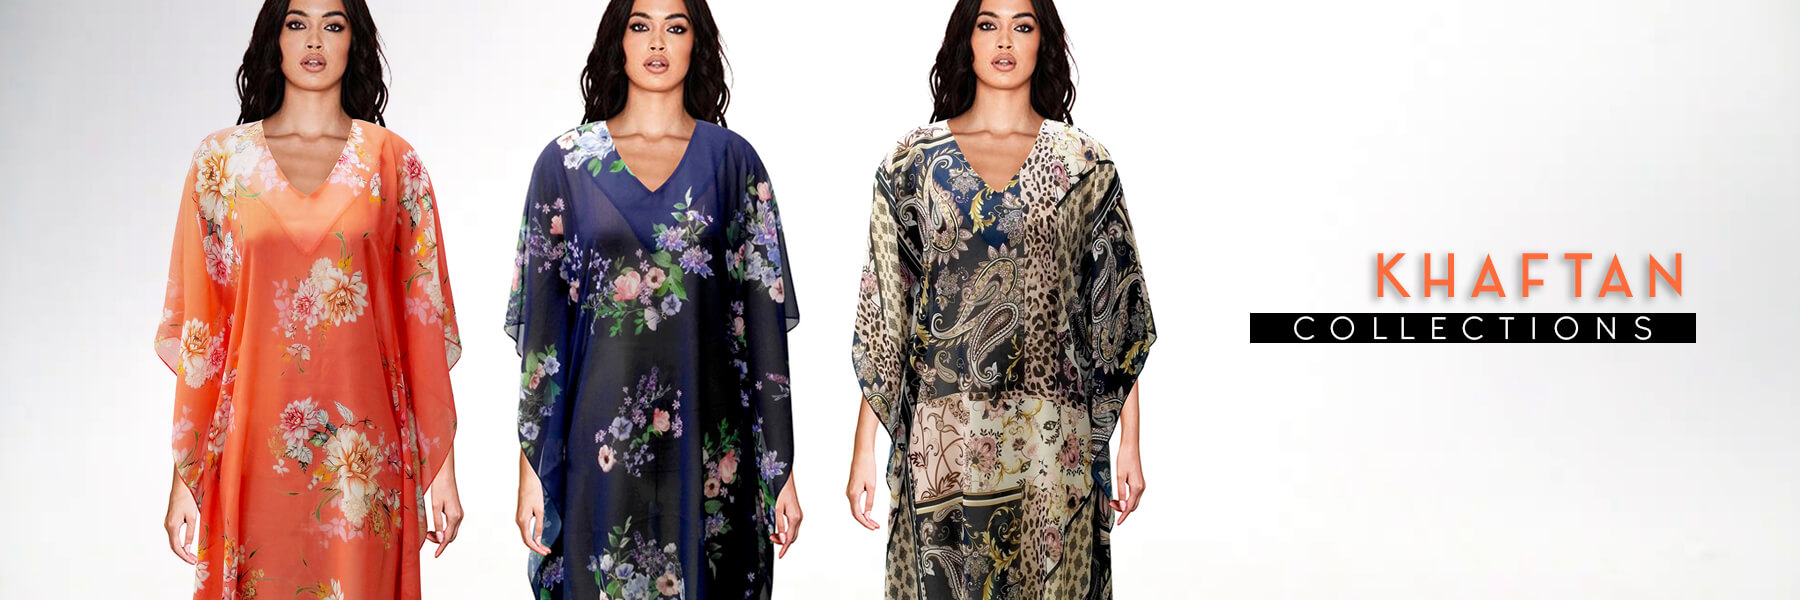 wholesale-khaftan-clothing-and-garments-supplier-in-dubai-uae-and-middle-east